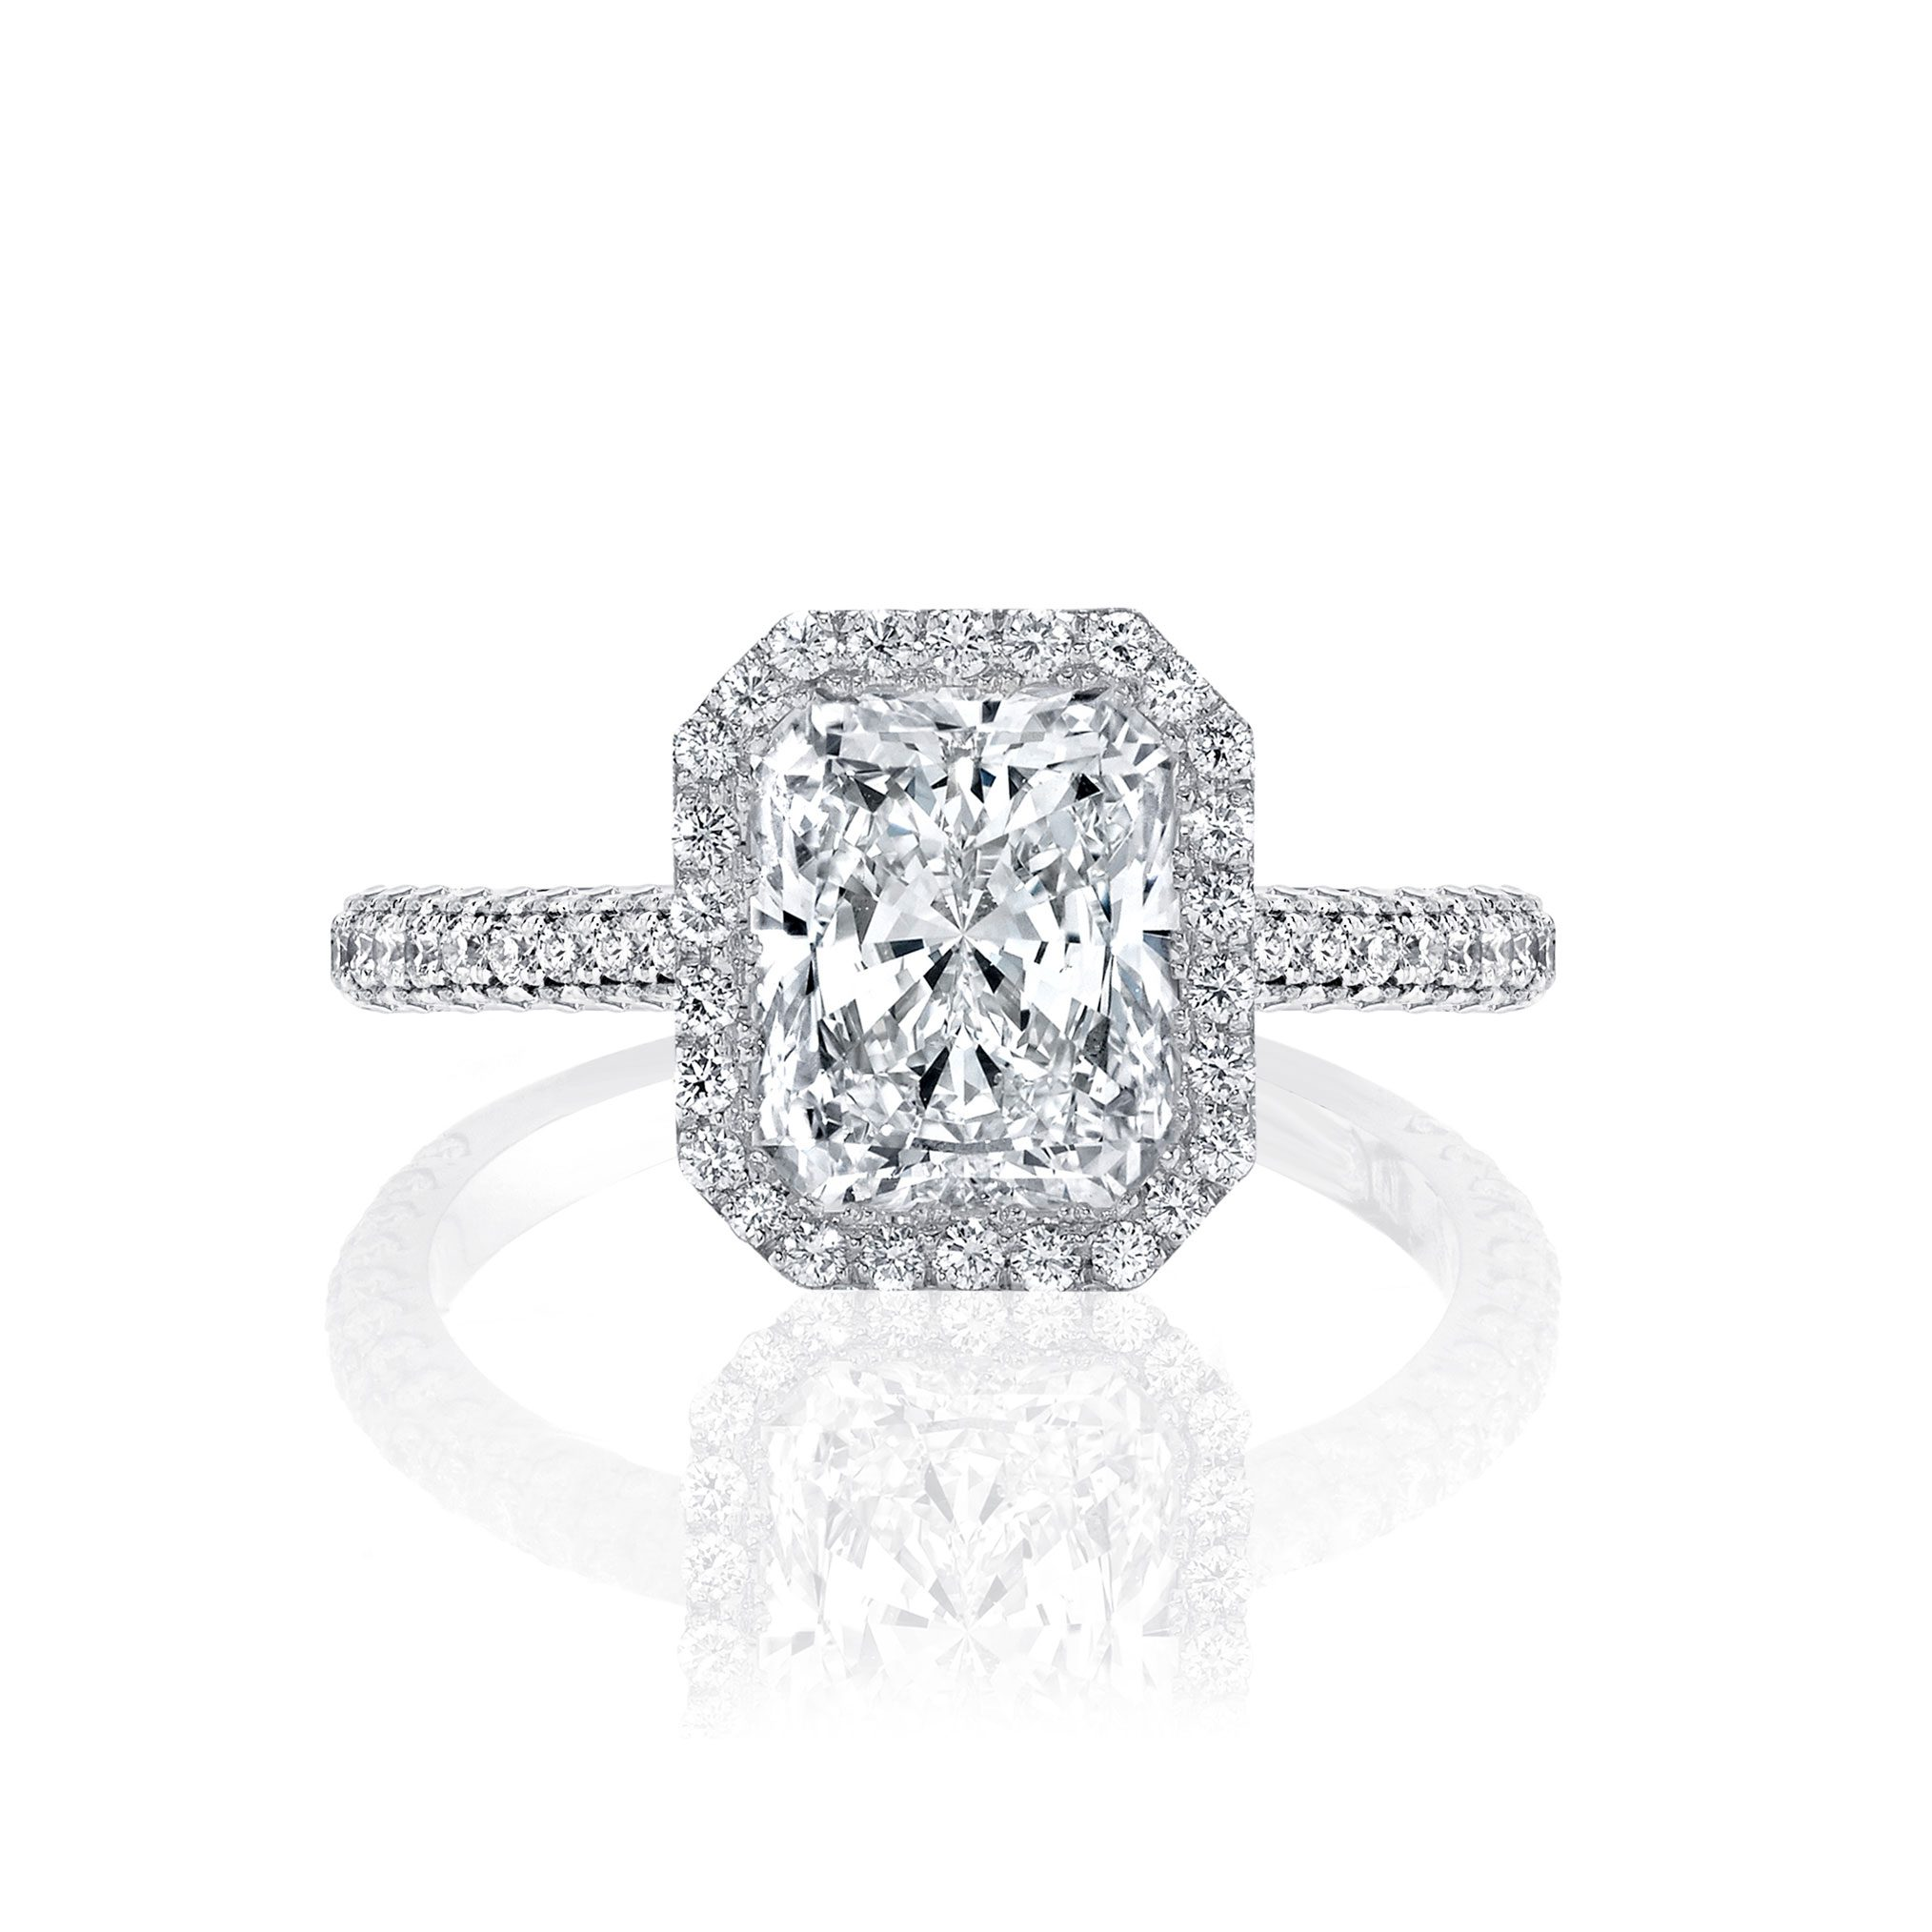 Jacqueline Seamless Halo® Engagement Ring with Lab Grown Radiant Cut Diamond in 18k white gold